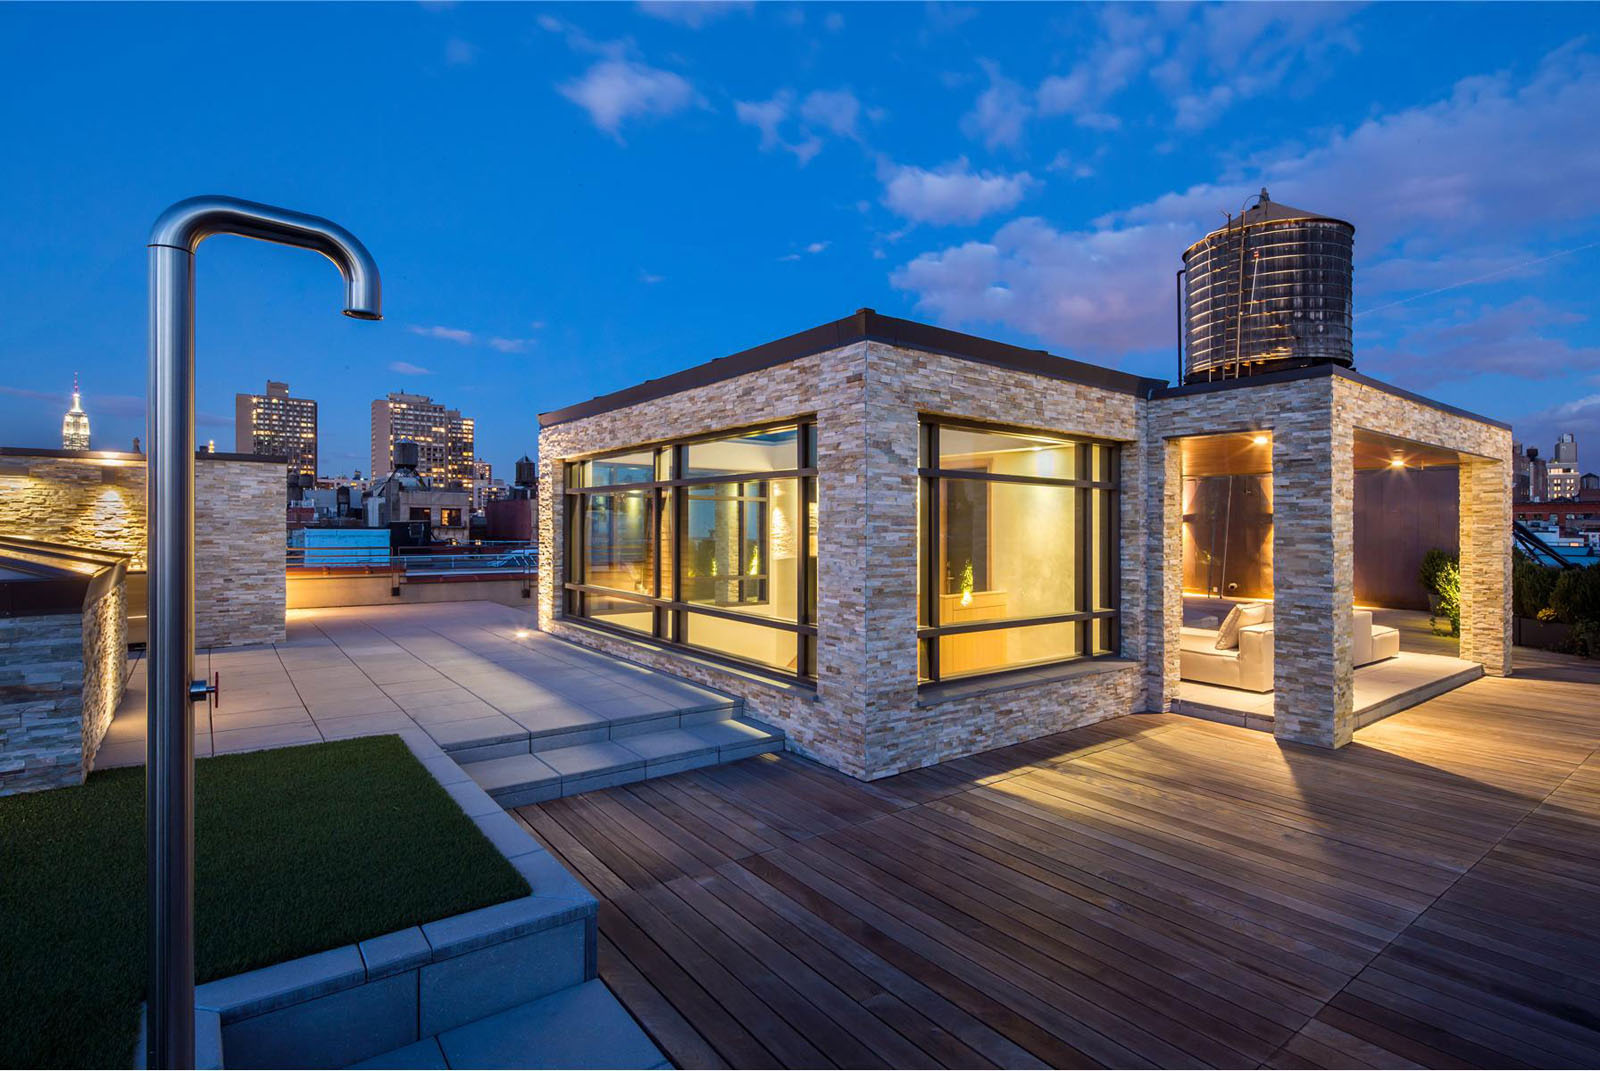 Two Bedroom Houses For Rent Exclusive Lower Manhattan Penthouse Loft In Soho